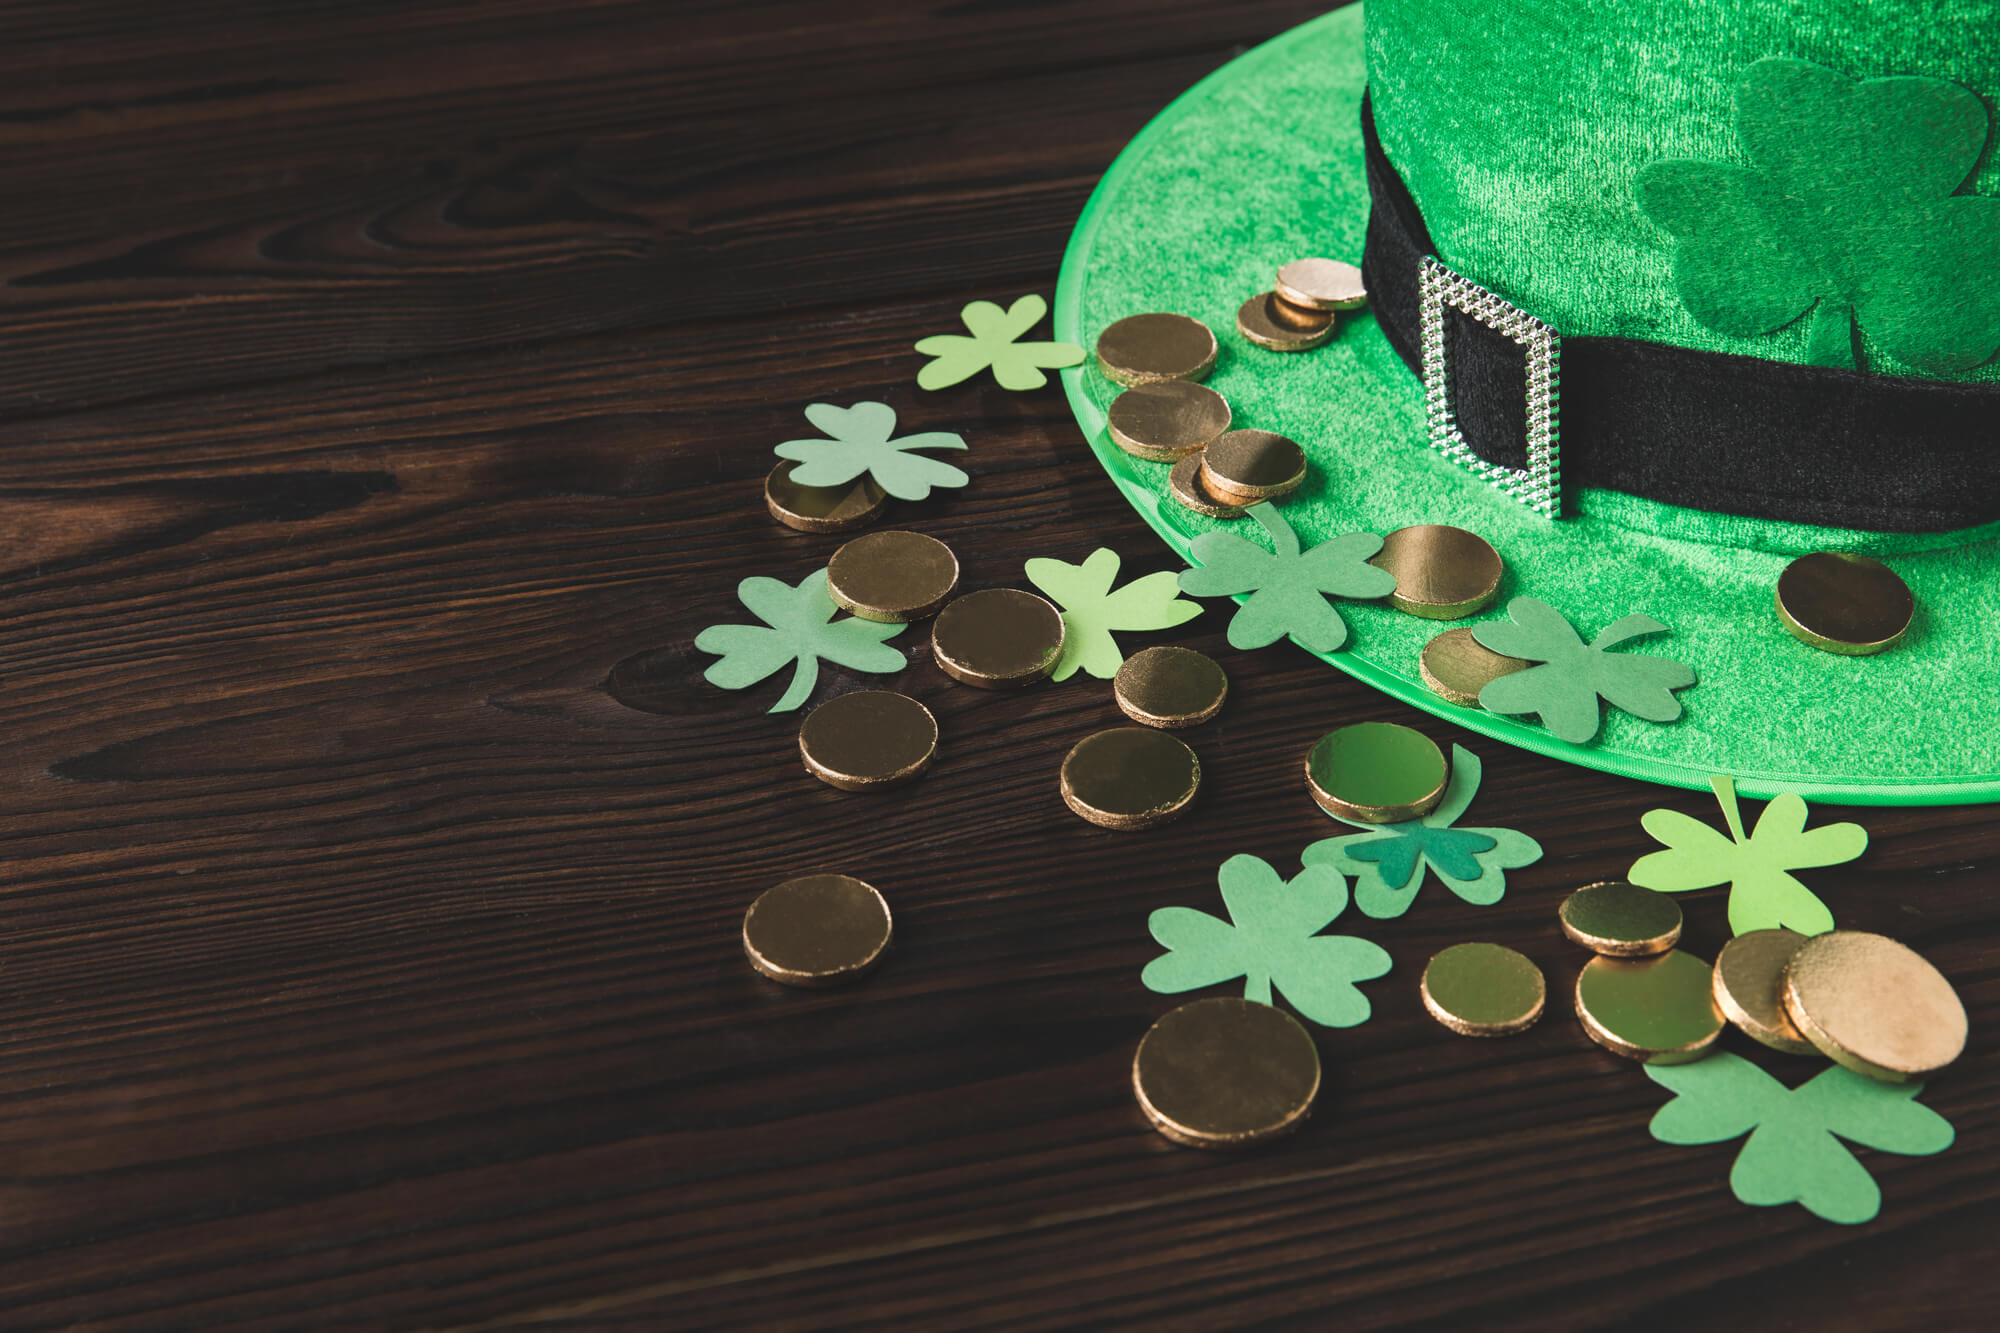 Halloween 2020 Bar Crawl Rockford Illinois St. Patrick's Day Events in the Rockford Area | Stateline Kids